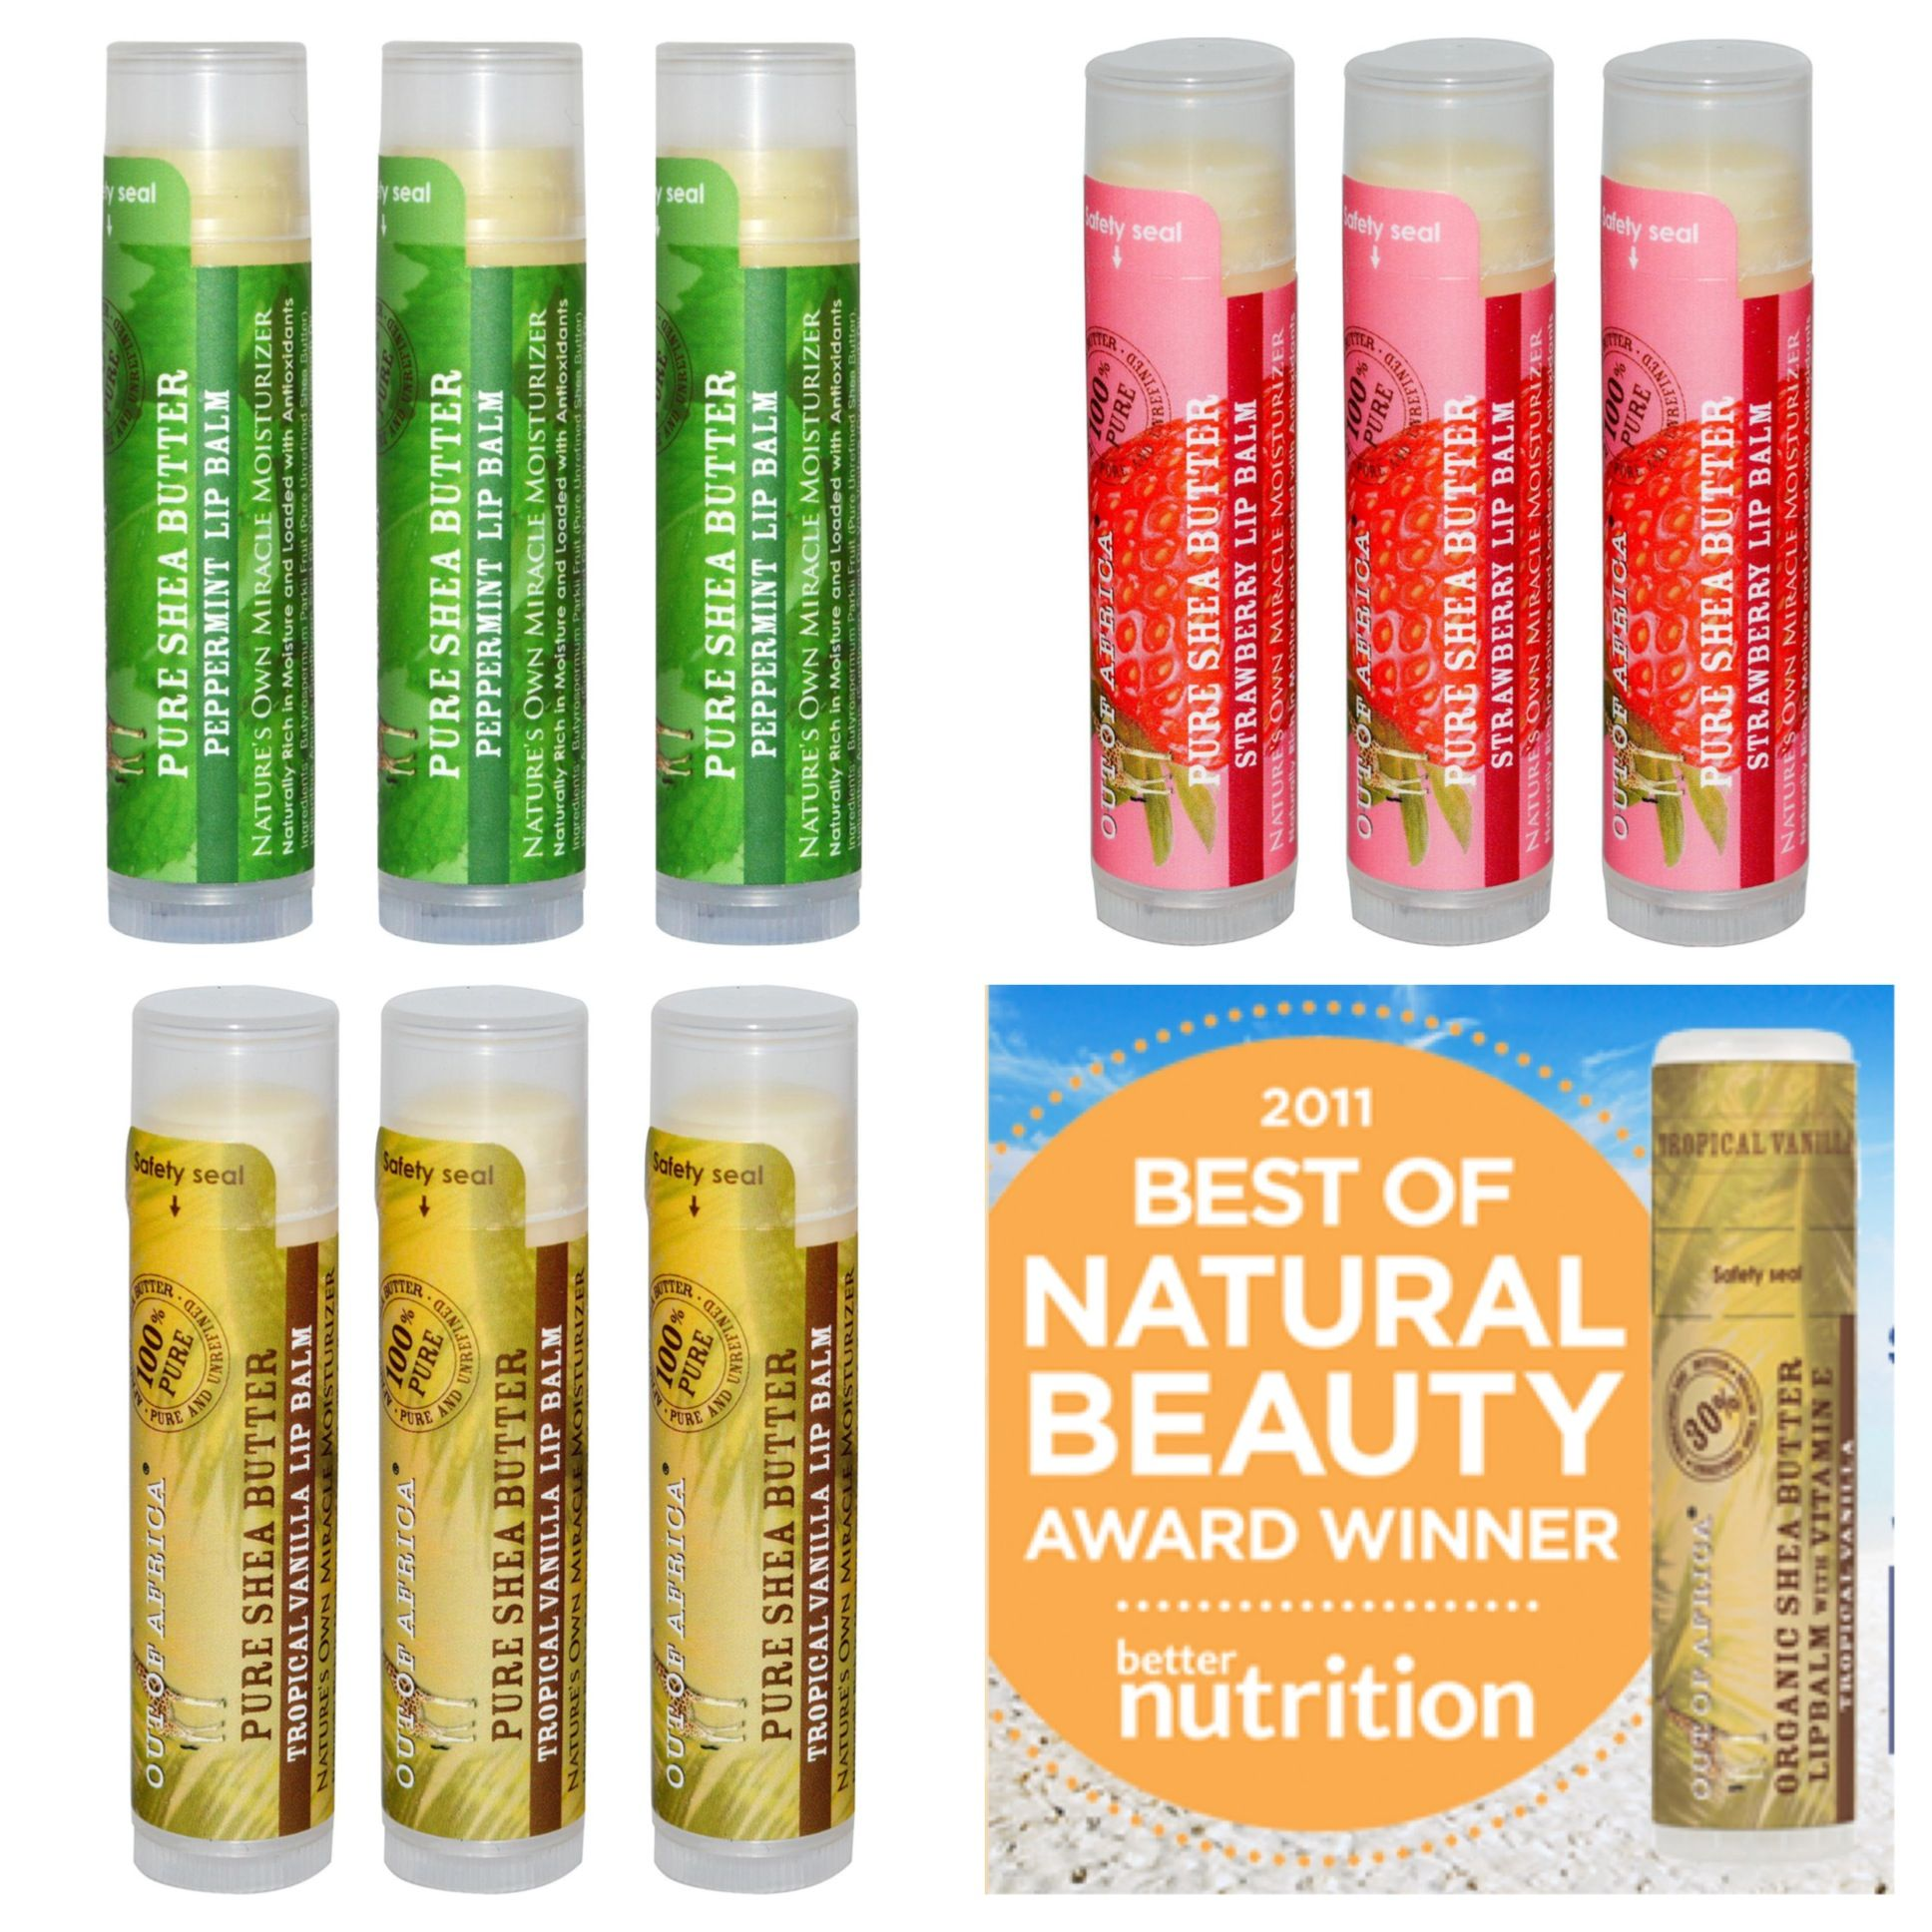 Weekend Lip Balm Sale!! Check out our website for more details on this amazing deal!  http://www.outofafricashea.com/products/lipbalms/lipbalms.html